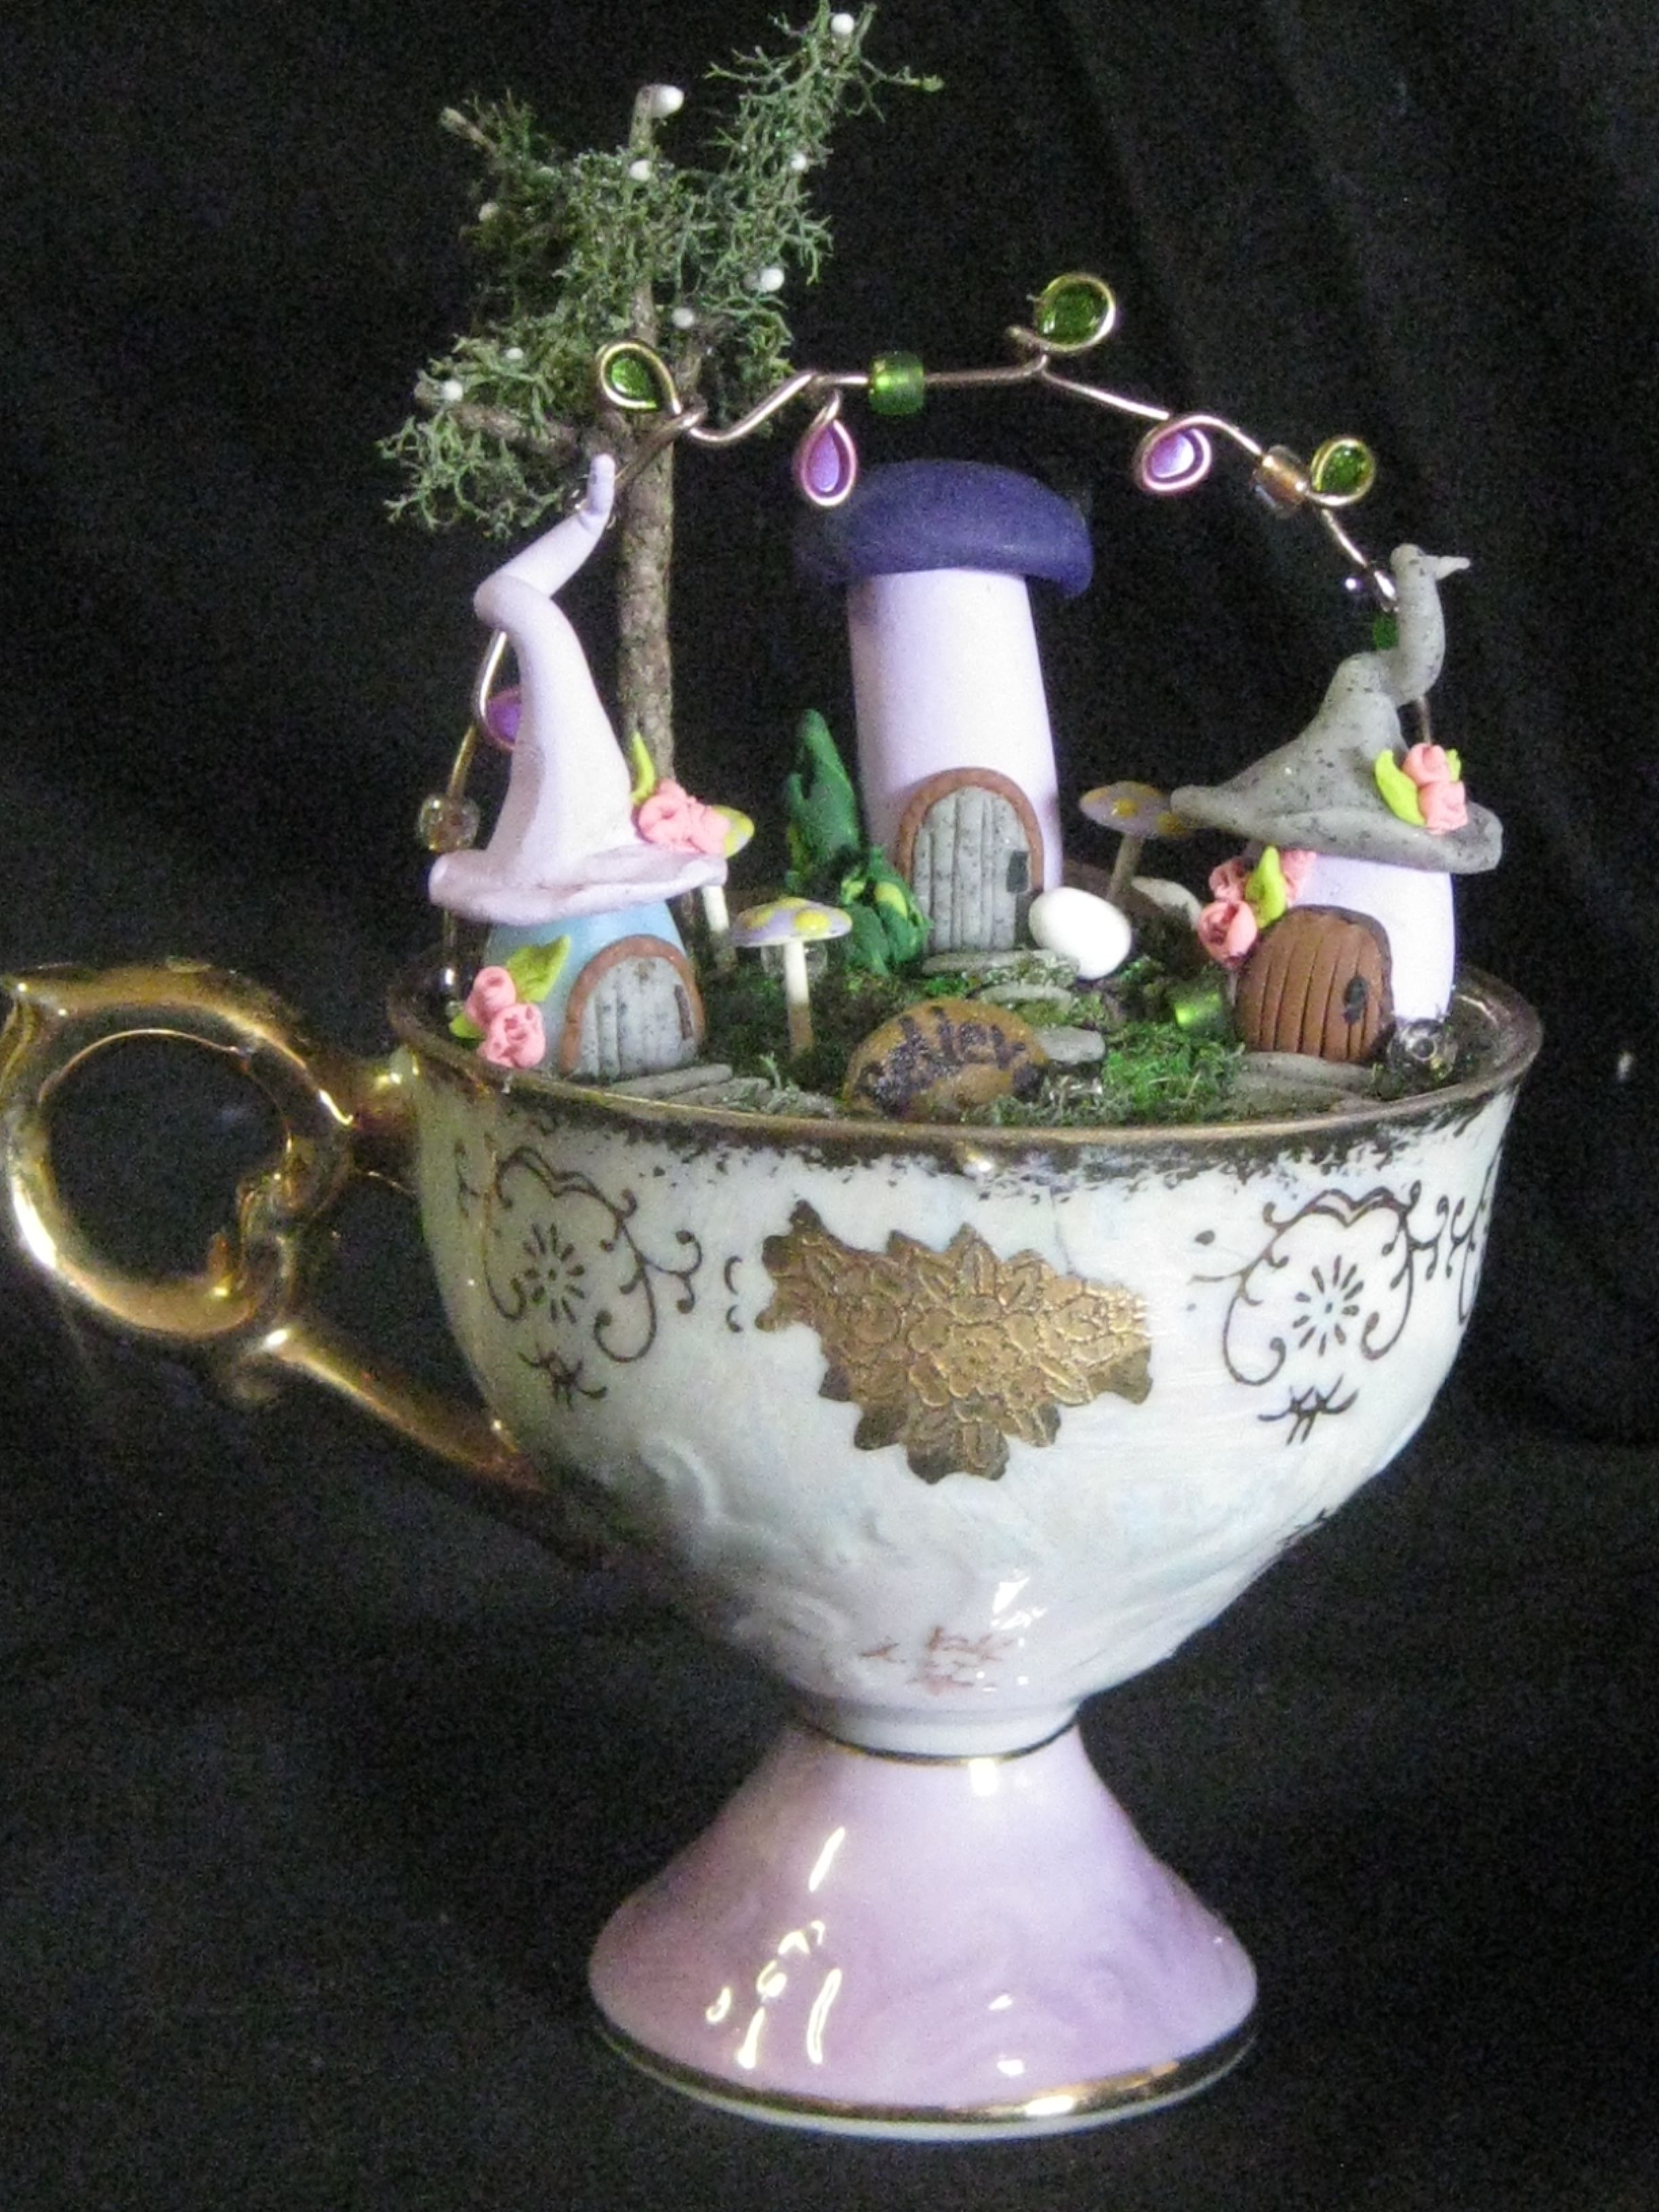 Teacup Fairy Villages By Geri Luciano Created Using Thrift Store Teacups Polymer Clay Houses Painted Furnit Teacup Crafts Fairy Village Polymer Clay Fairy